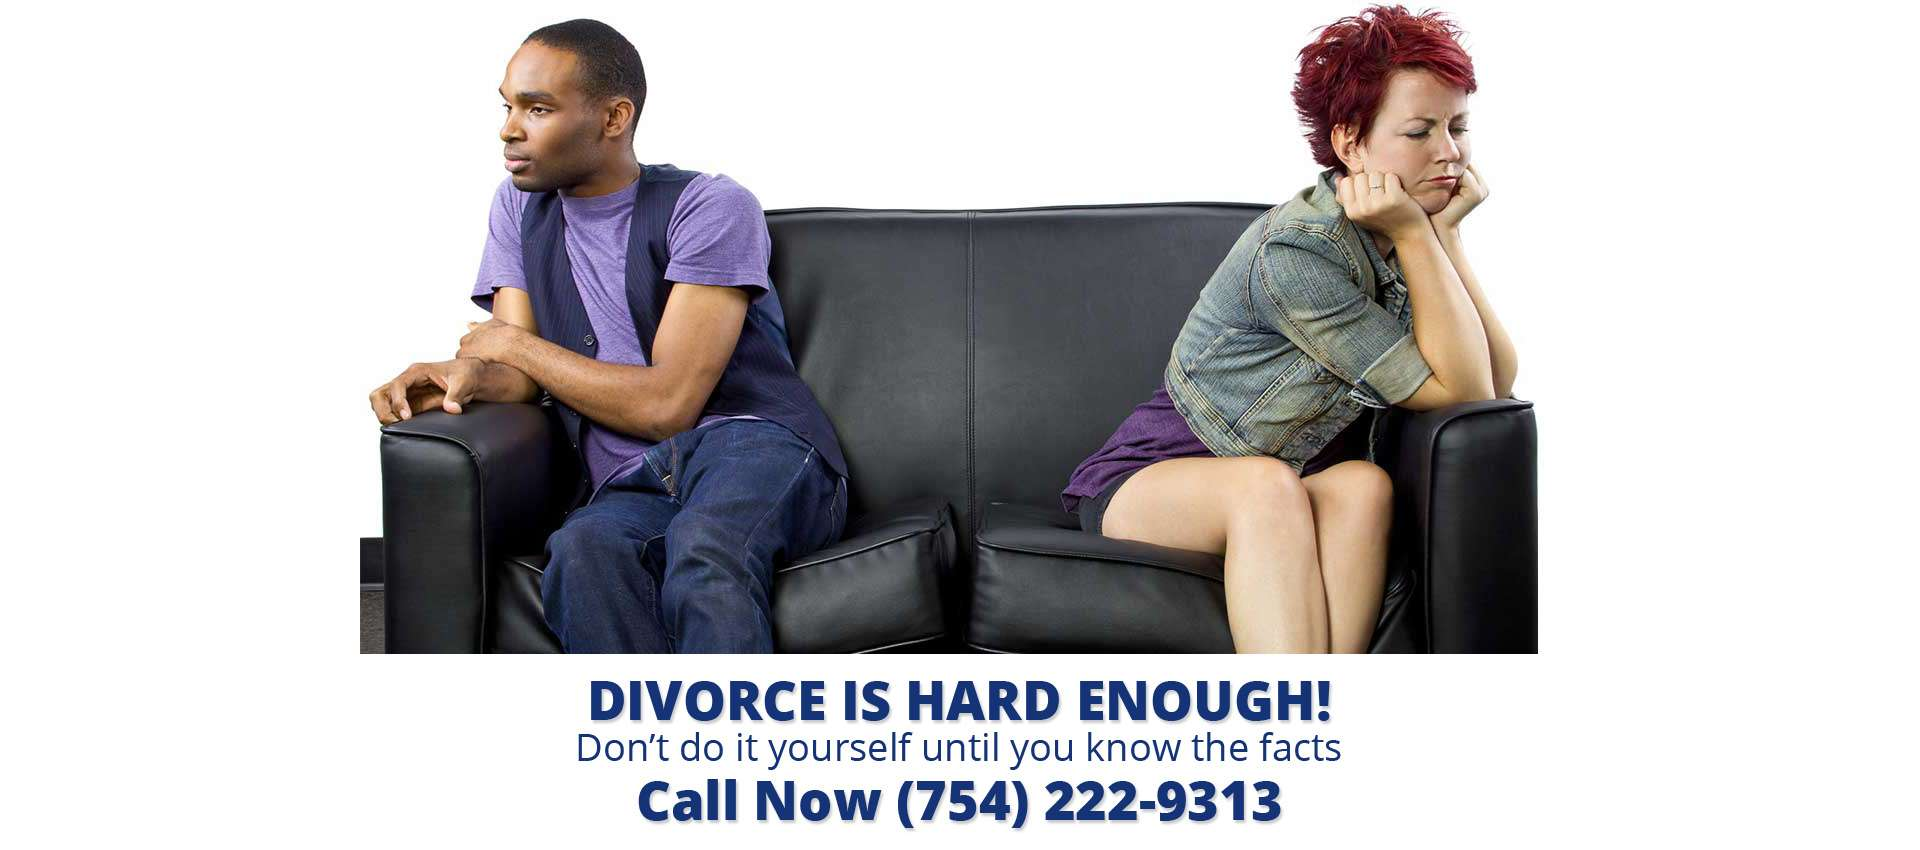 Low cost affordable divorce attorneys center in pompano beach fl filing for divorce in florida we offer simple solutions solutioingenieria Gallery